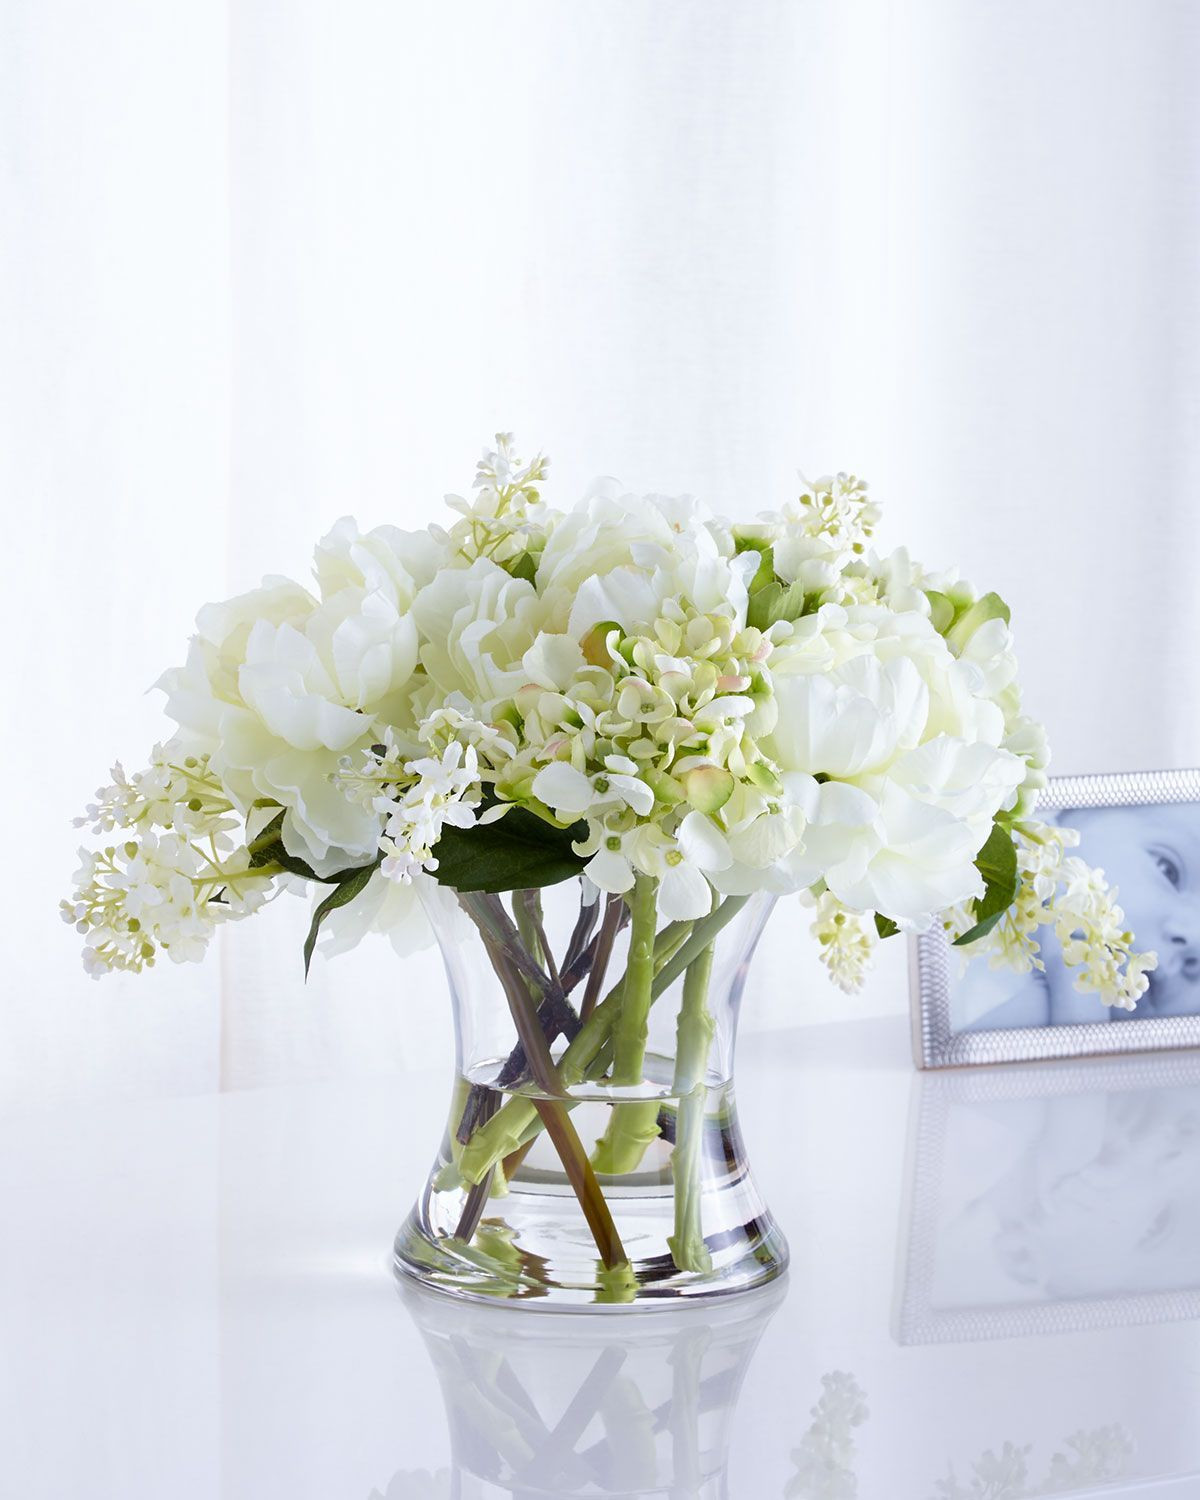 silk peonies in vase of windy faux floral arrangement decorate it pinterest floral in handcrafted free form faux floral arrangement of hydrangeas lilacs and peonies faux silk florals exaggerated hourglass shaped glass vase 15w